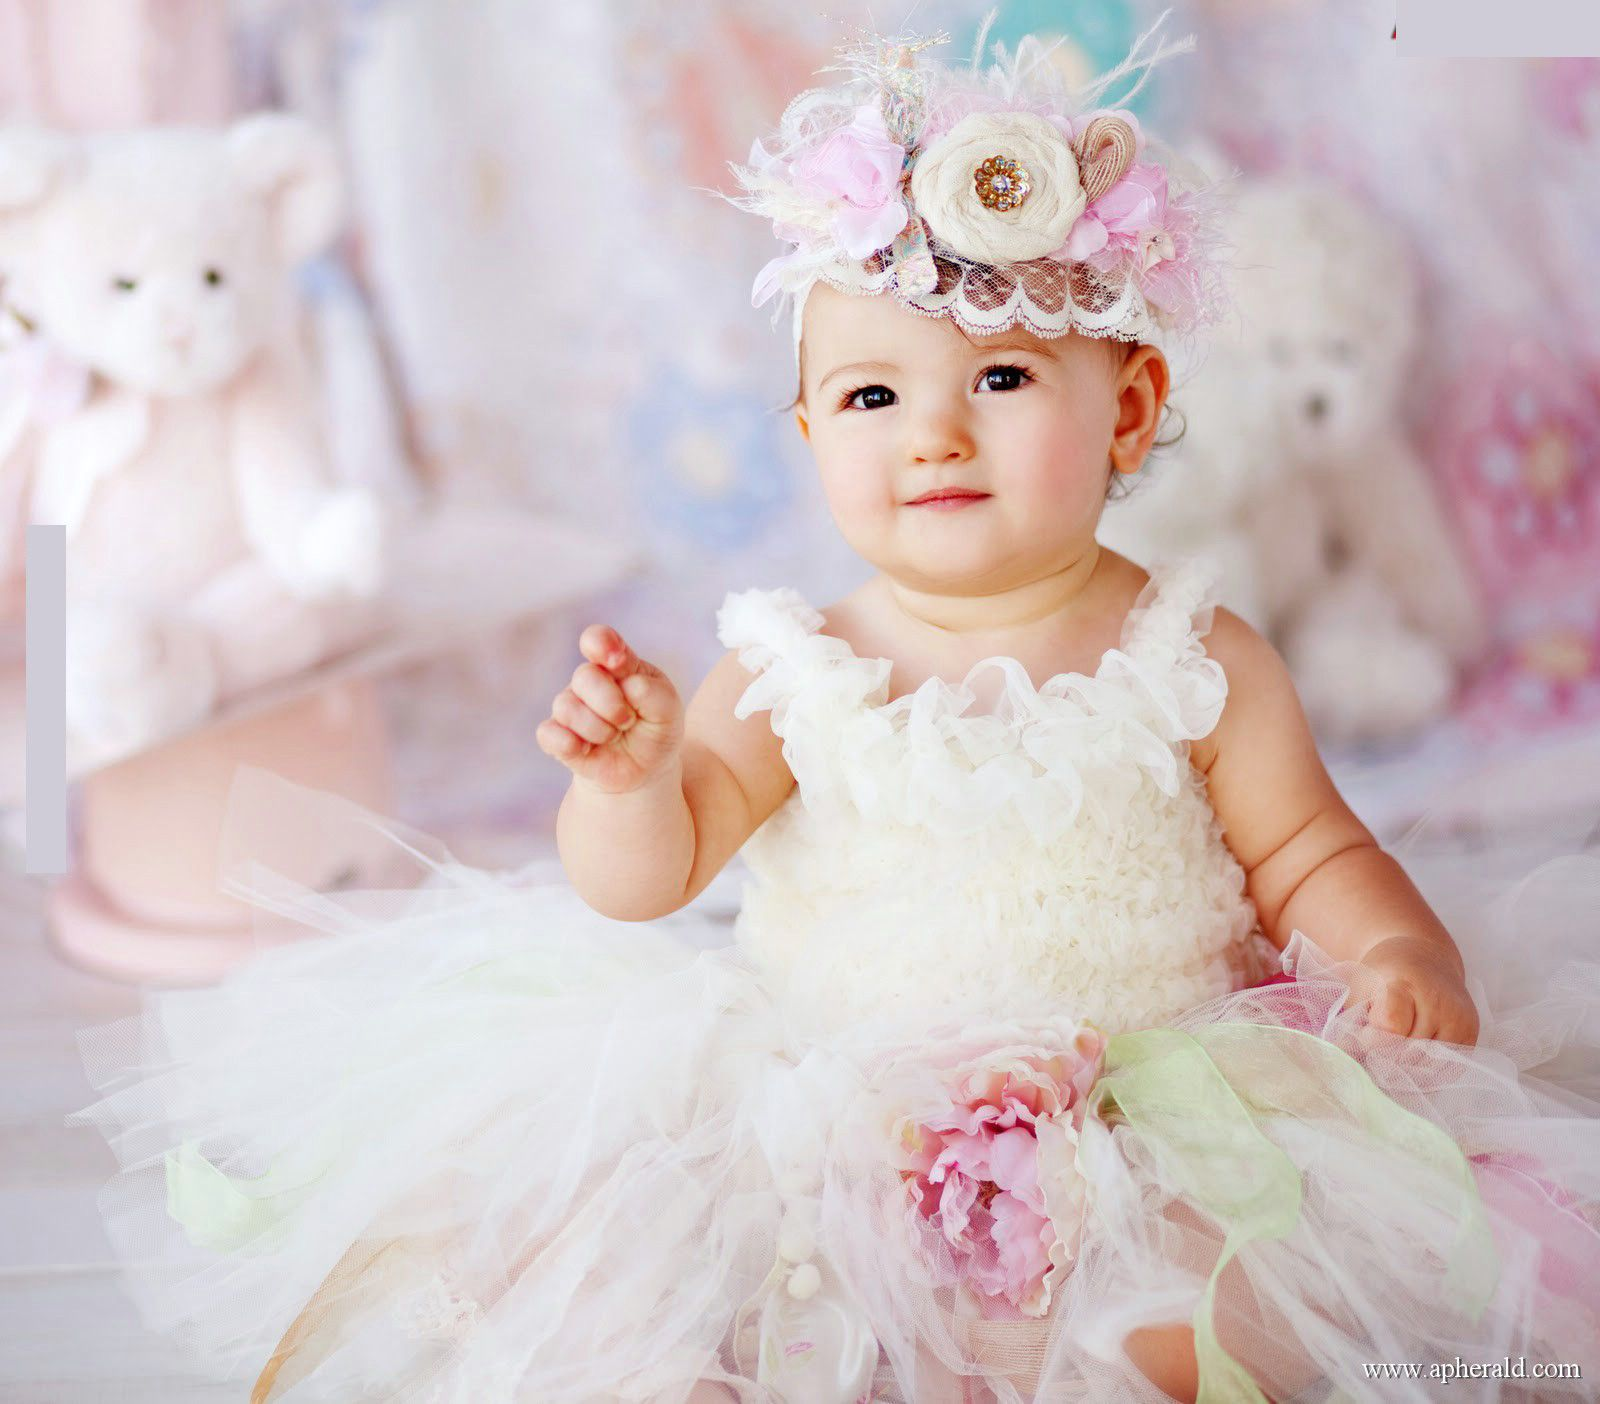 Babies Wallpapers Cute Baby Pictures Download Cute Princess Hd Wallpaper Cute Baby For Your